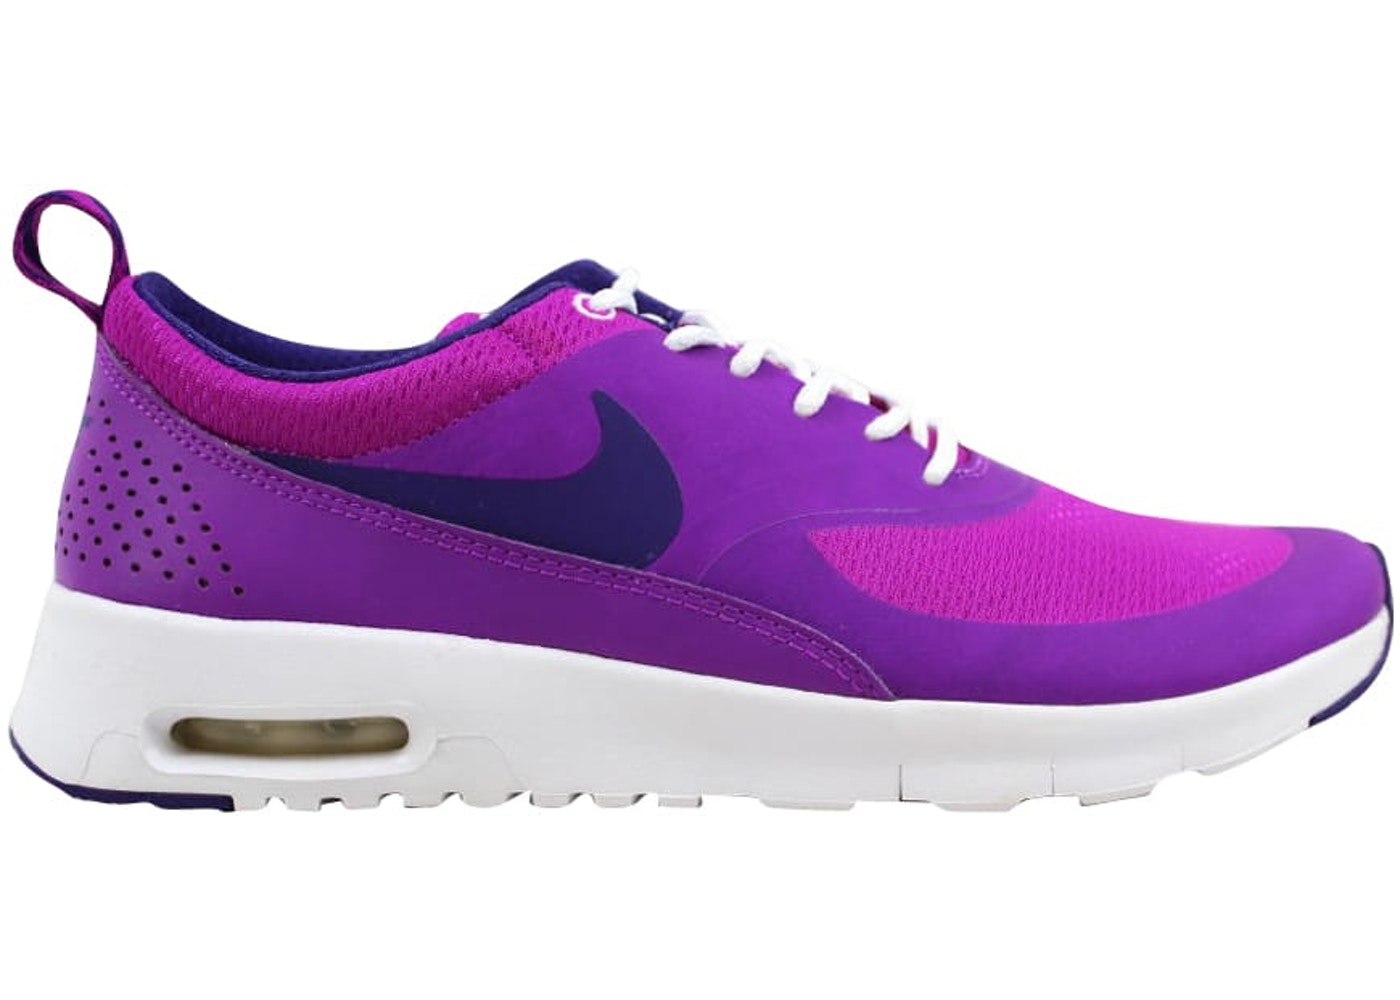 Final puenting Todopoderoso  Nike Air Max Thea Hyper Violet (GS) - 814444-501